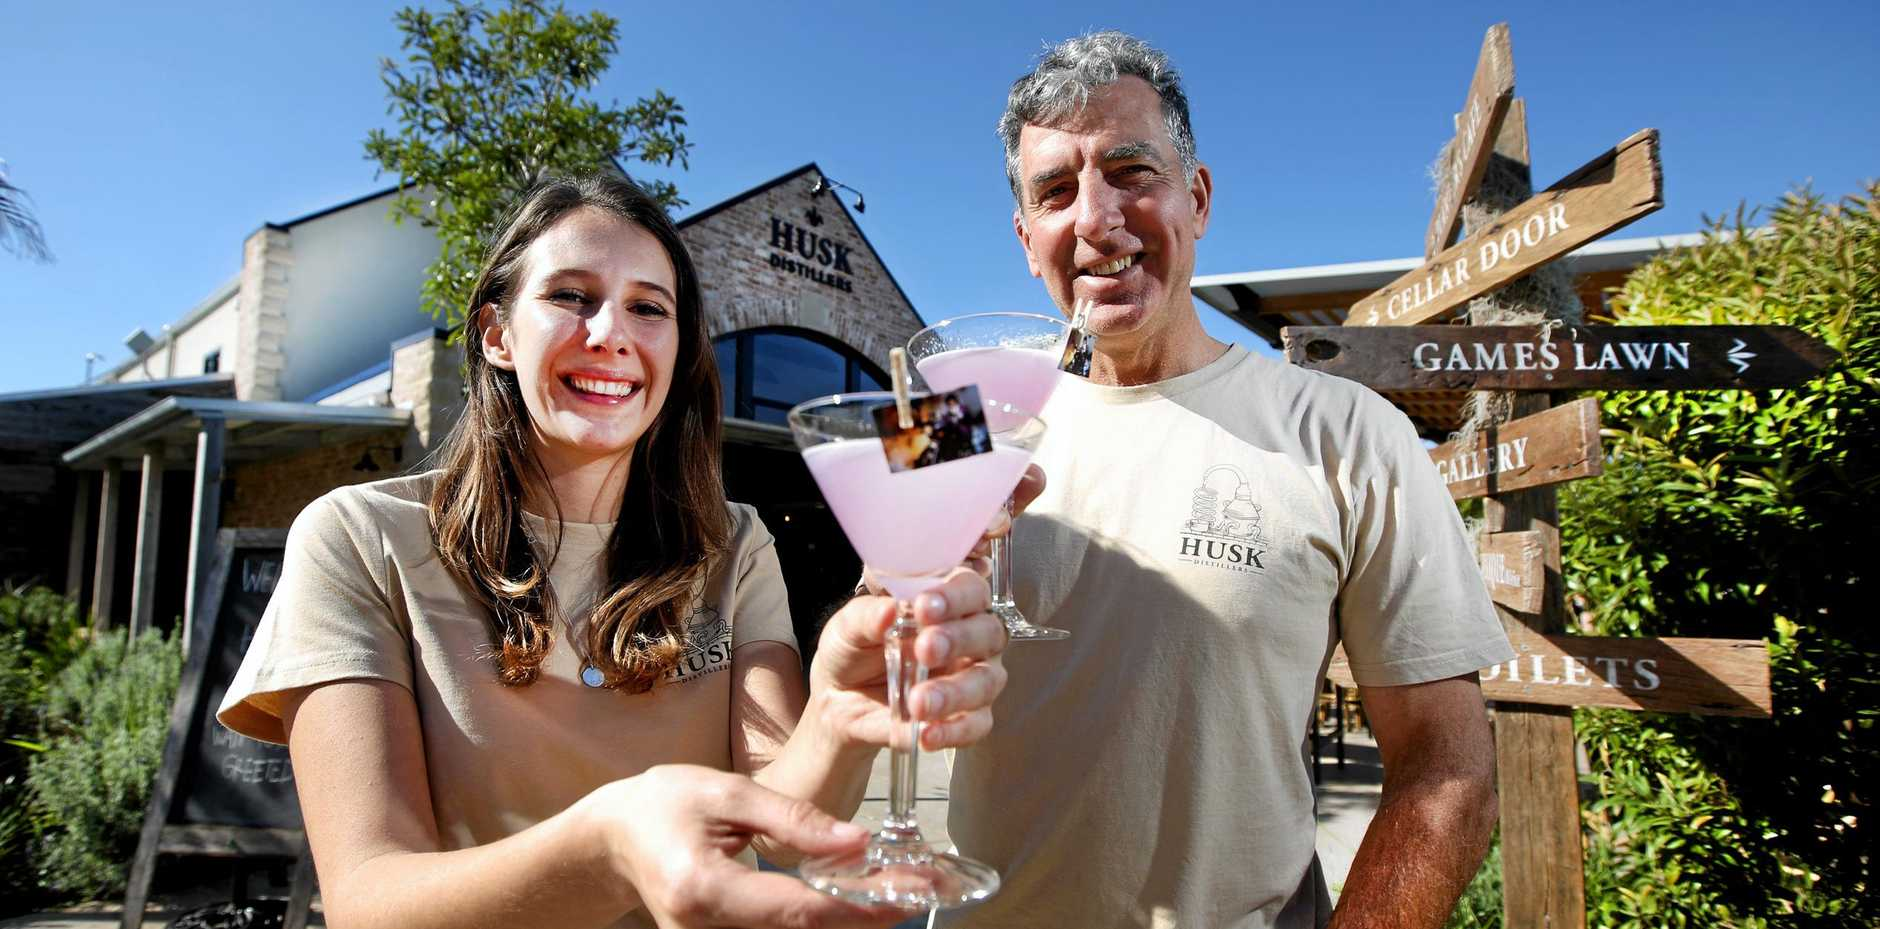 Husk Distillery's Harriet Messenger and her father Paul Messenger get ready to celebrate Husk's fourth birthday.